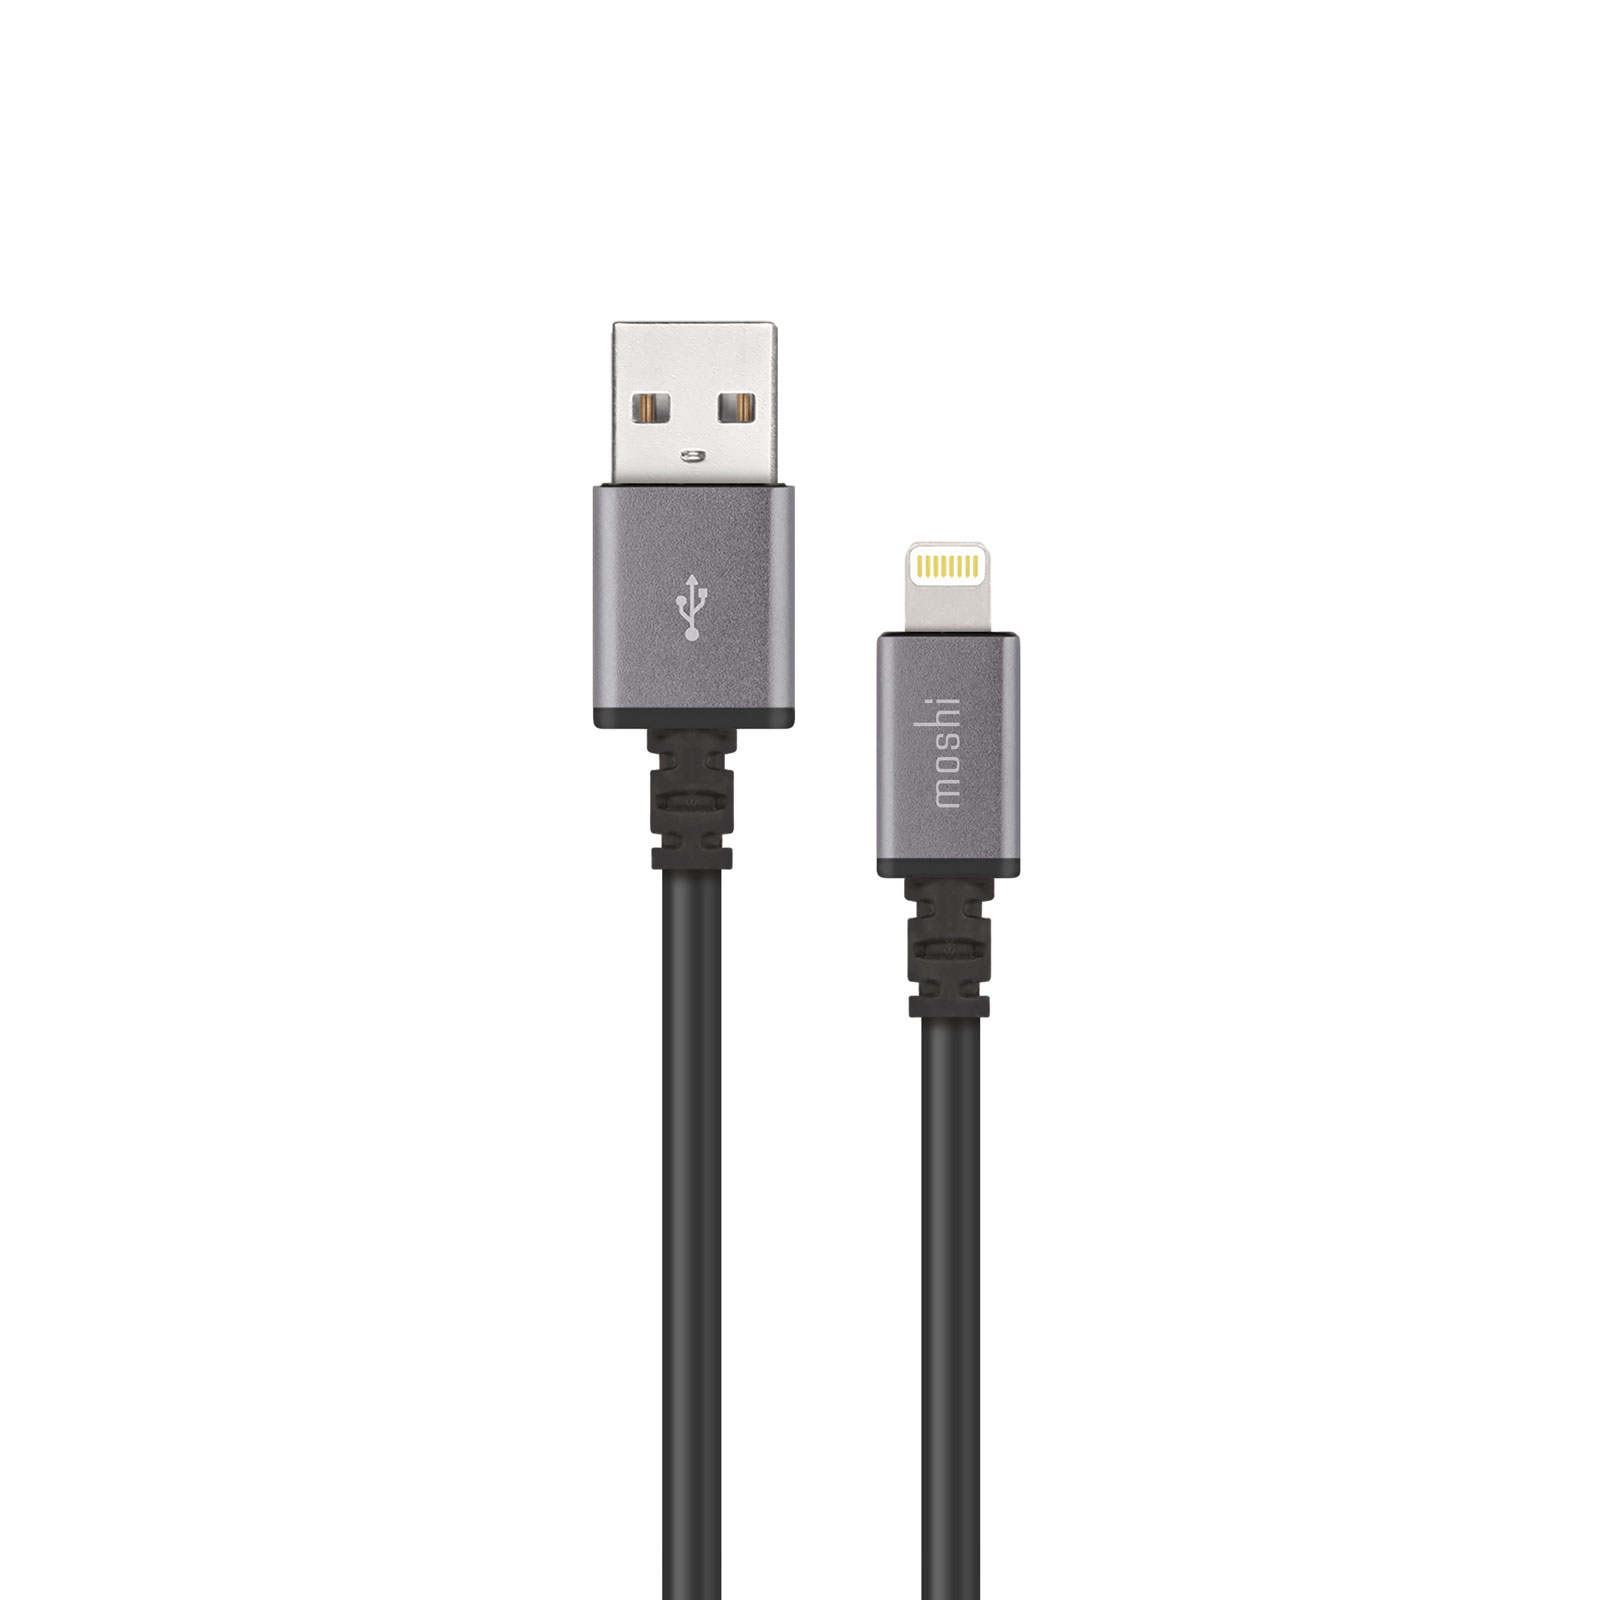 USB-A to Lightning Cable 10 ft (3 m)-2-thumbnail